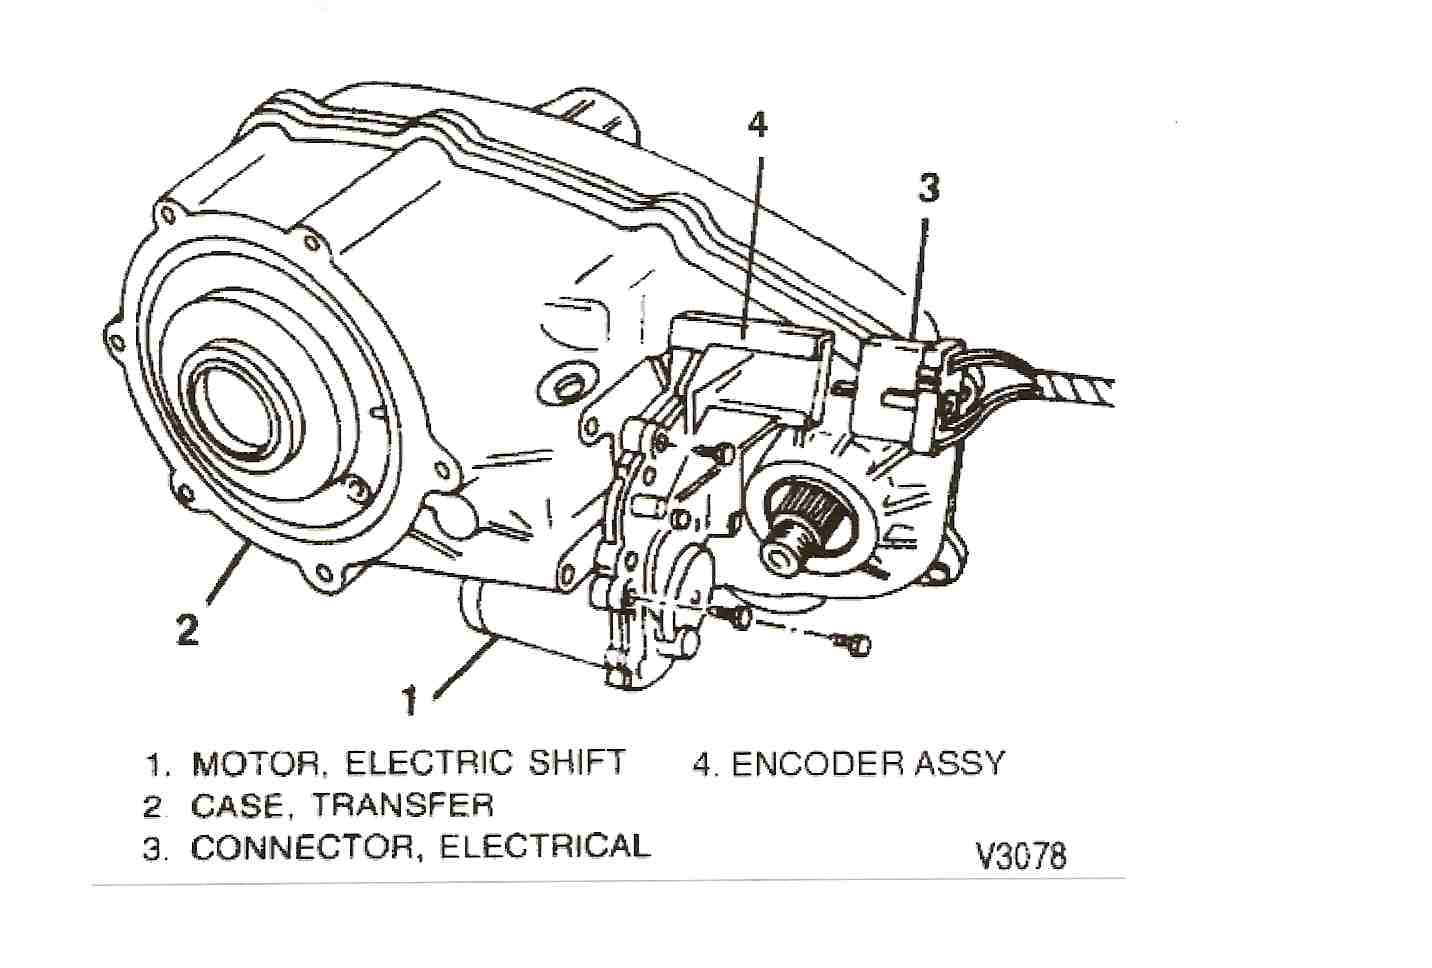 chevy blazer transfer case diagram 98 chevy blazer, transfer case shifter does not shift. it ... #1